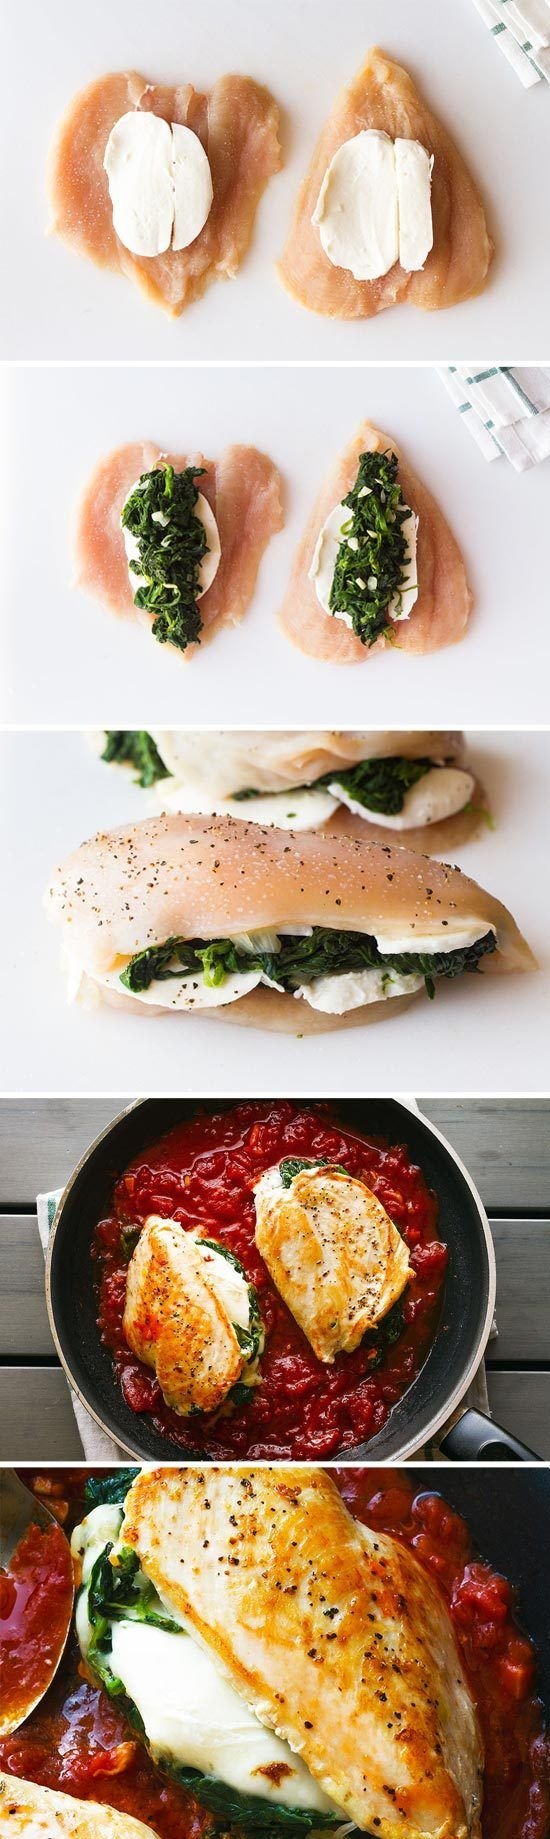 Stuffed Chicken Breast with Mozzarella and Spinach #quickdinnerideas